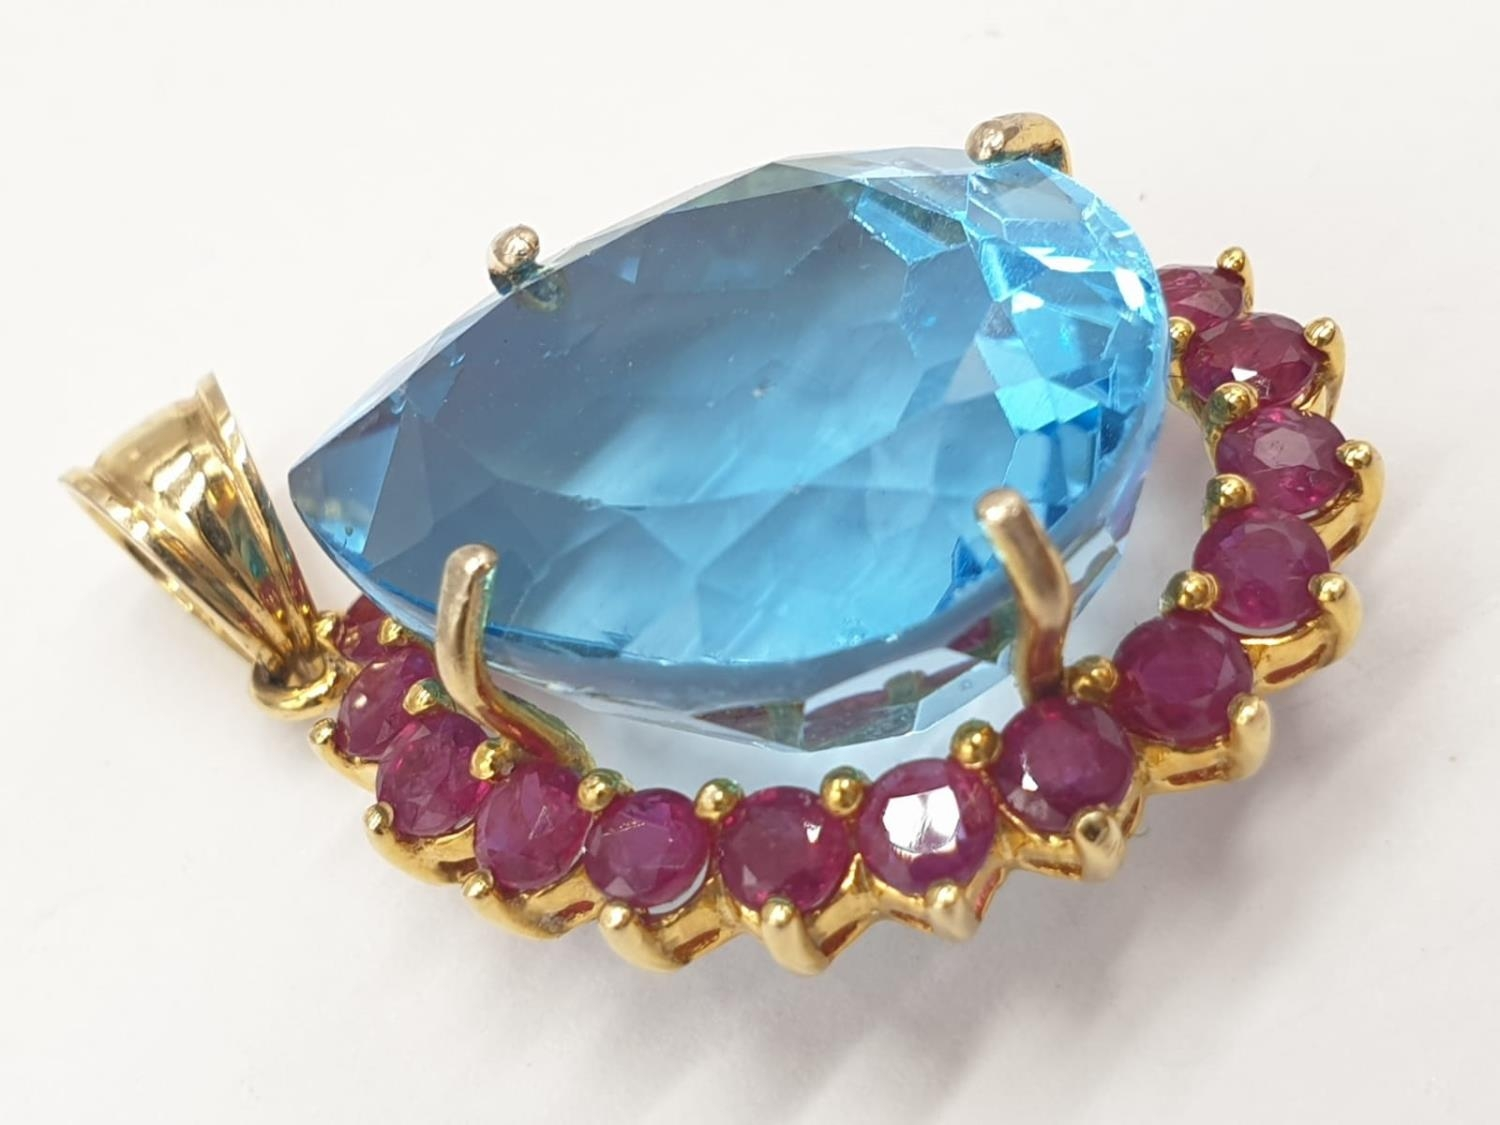 Topaz and ruby in 14ct gold pendant, weight 8g - Image 3 of 5